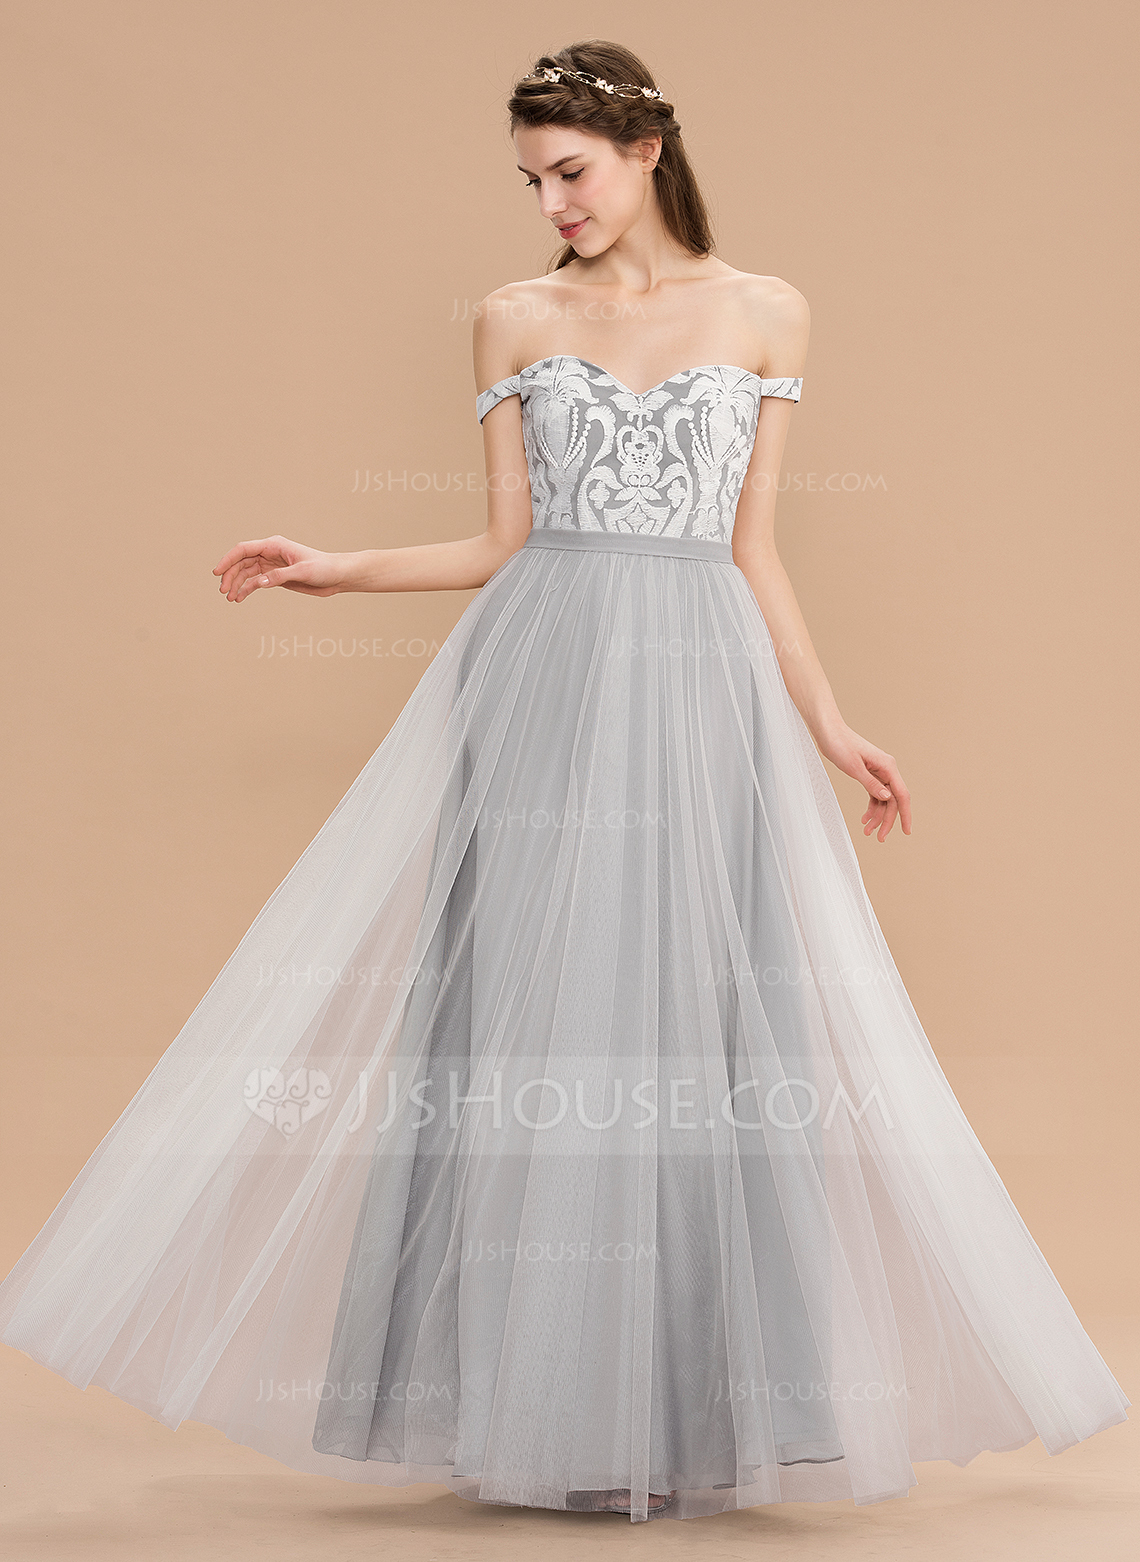 0e8732571eb A-Line Off-the-Shoulder Floor-Length Tulle Lace Bridesmaid Dress. Loading  zoom